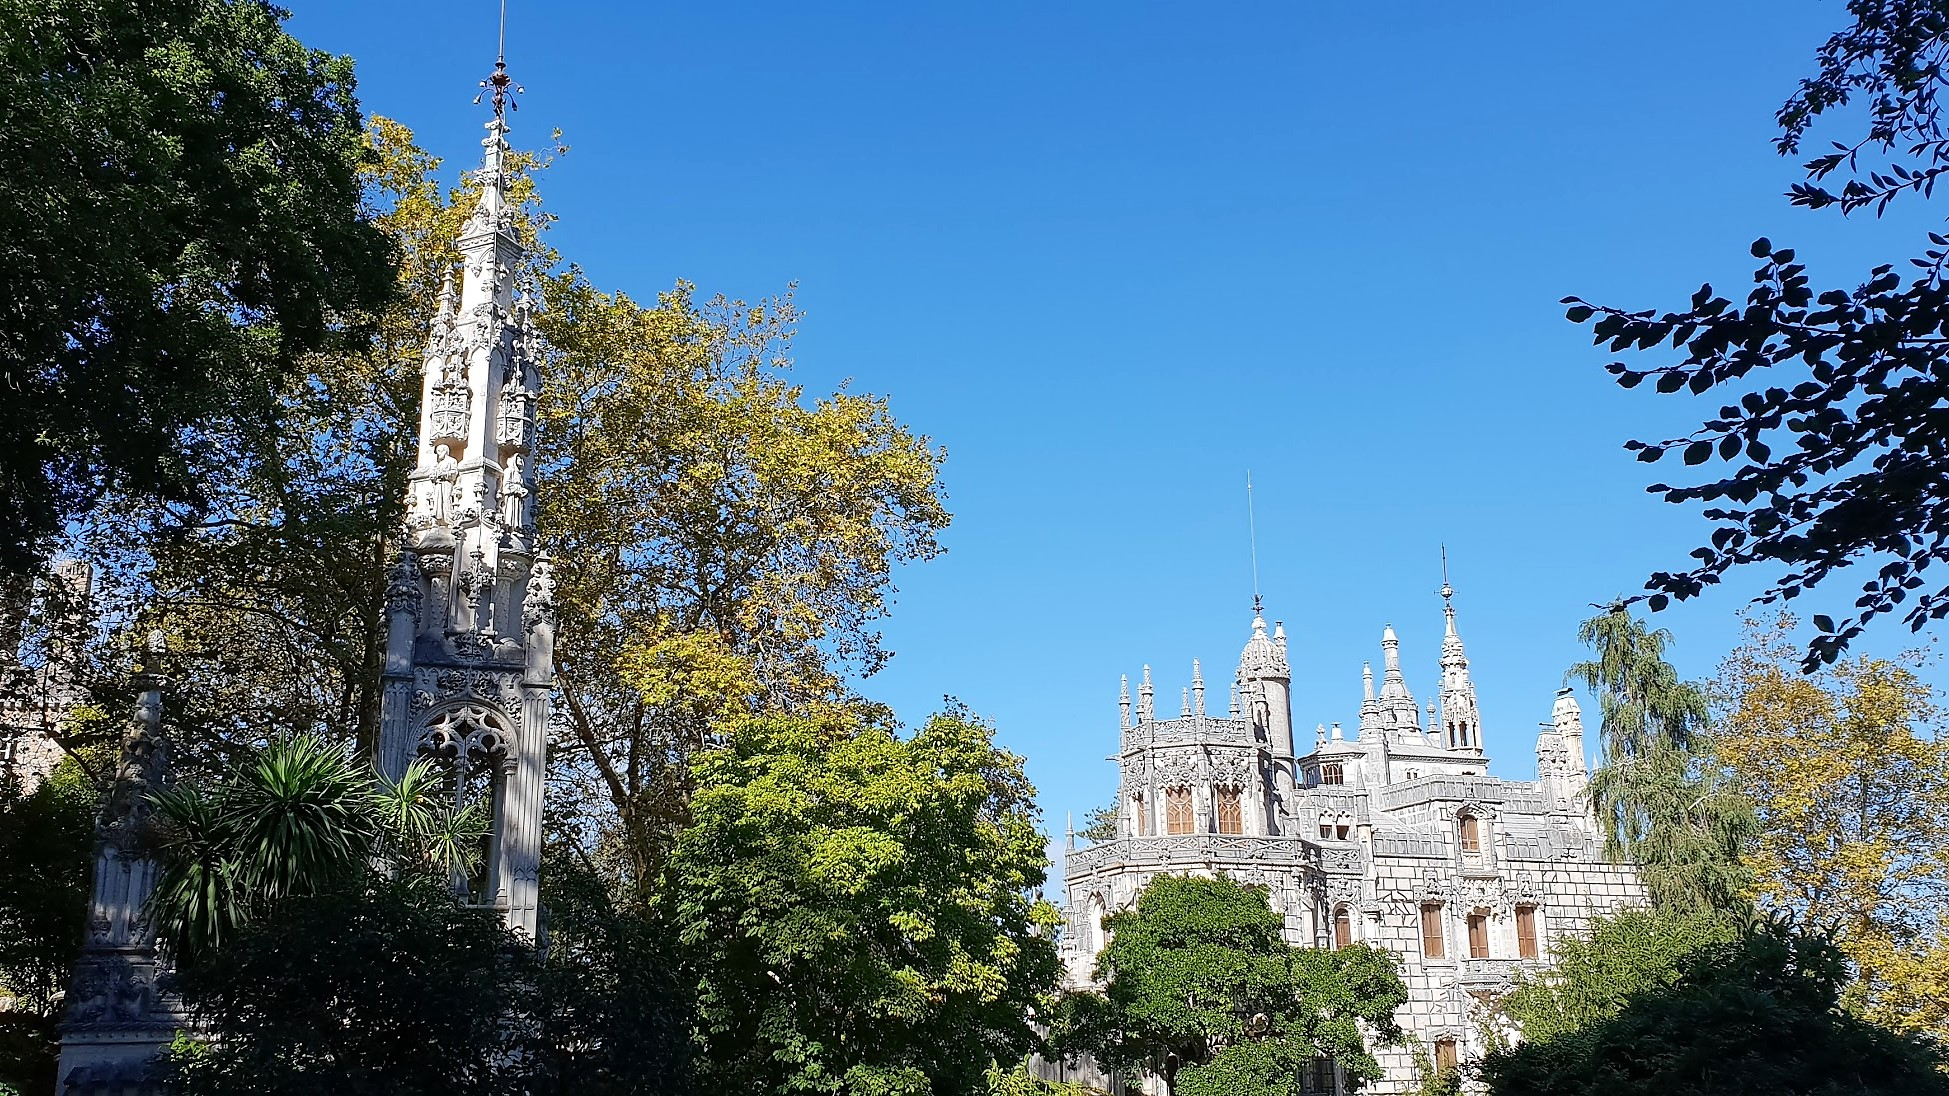 Sintra! Check out my other post about Sintra 🏰💓 Great daytrip: 40 minutes by train from Lisbon